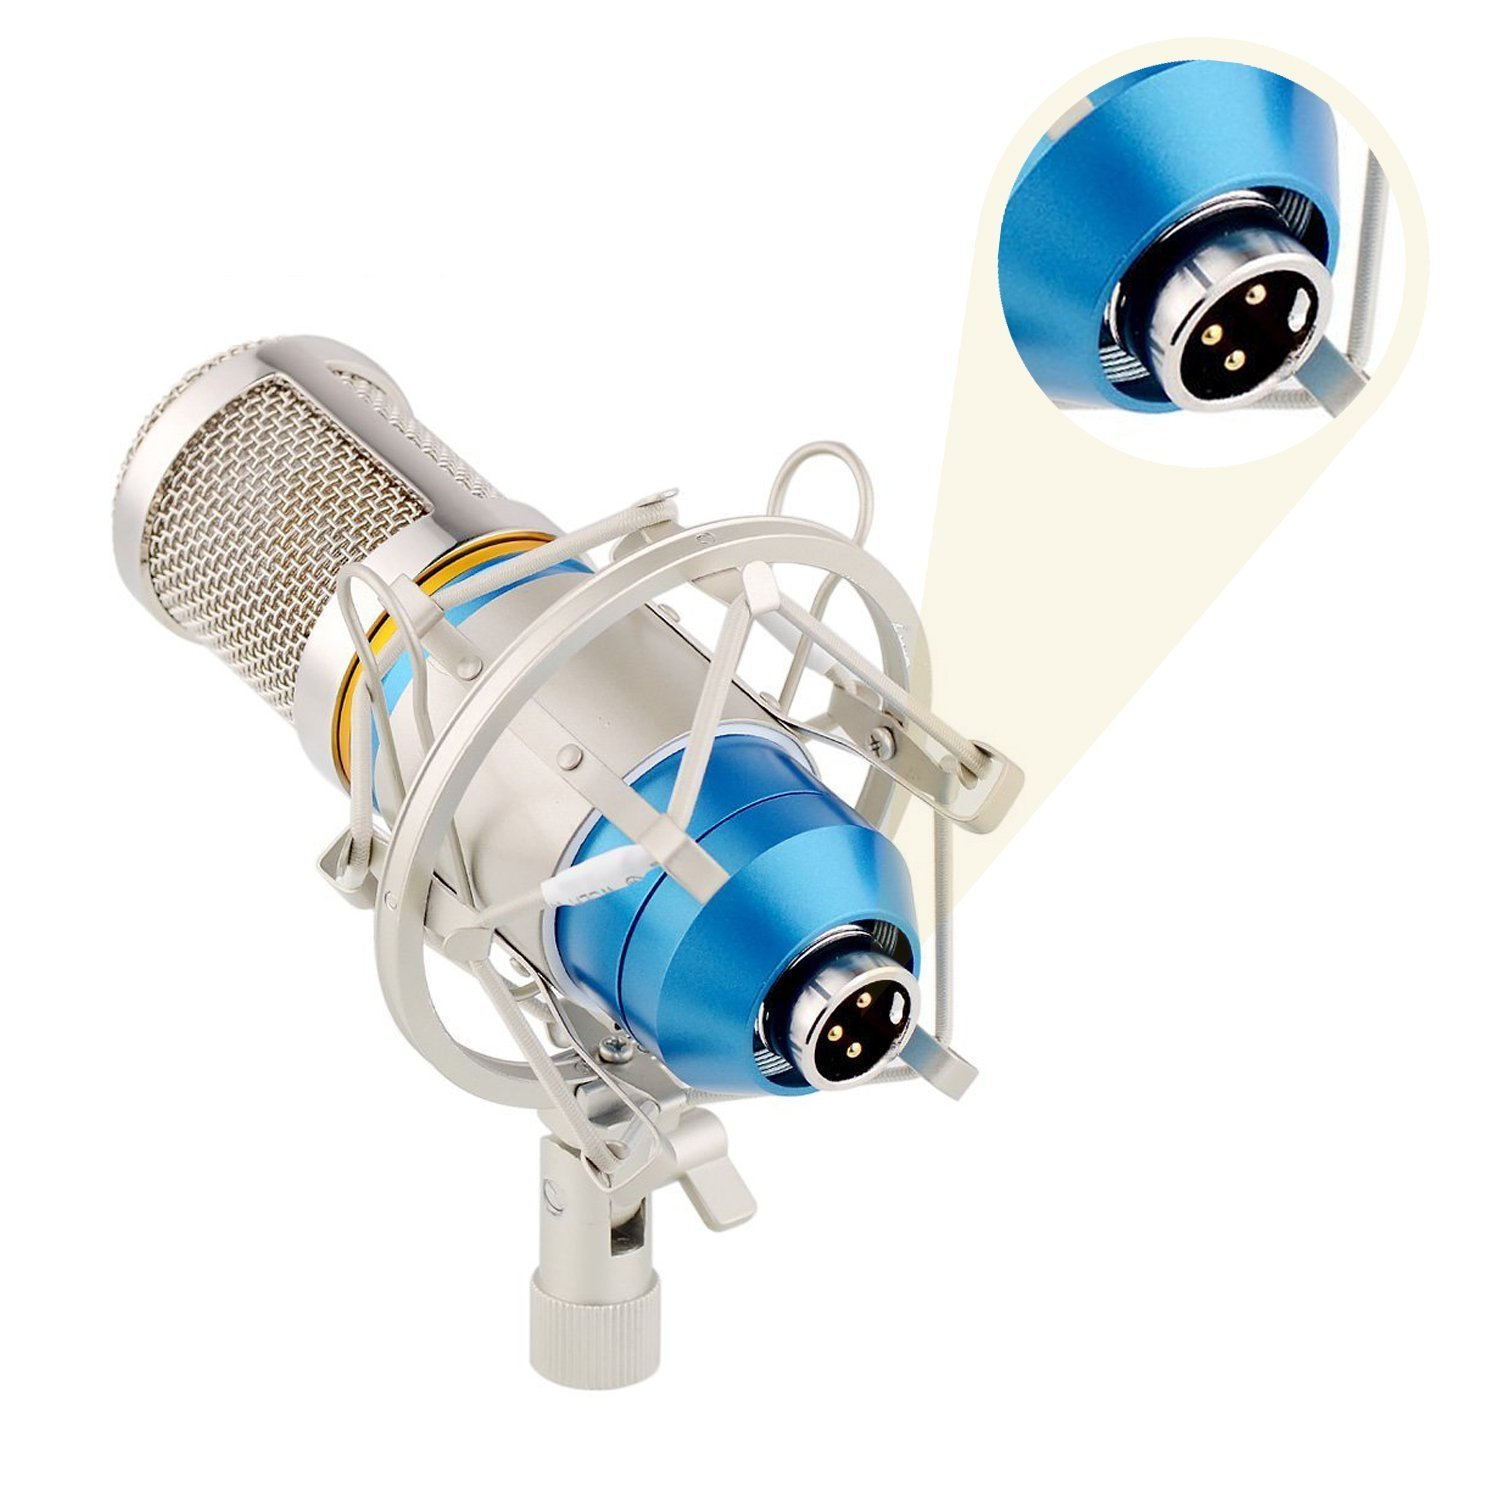 eBerry Condenser Microphone, Large Diaphragm Studio Broadcasting & Recording Vocal Condenser Mic with Shock Mount Holder Clip (Blue) by eBerry (Image #5)